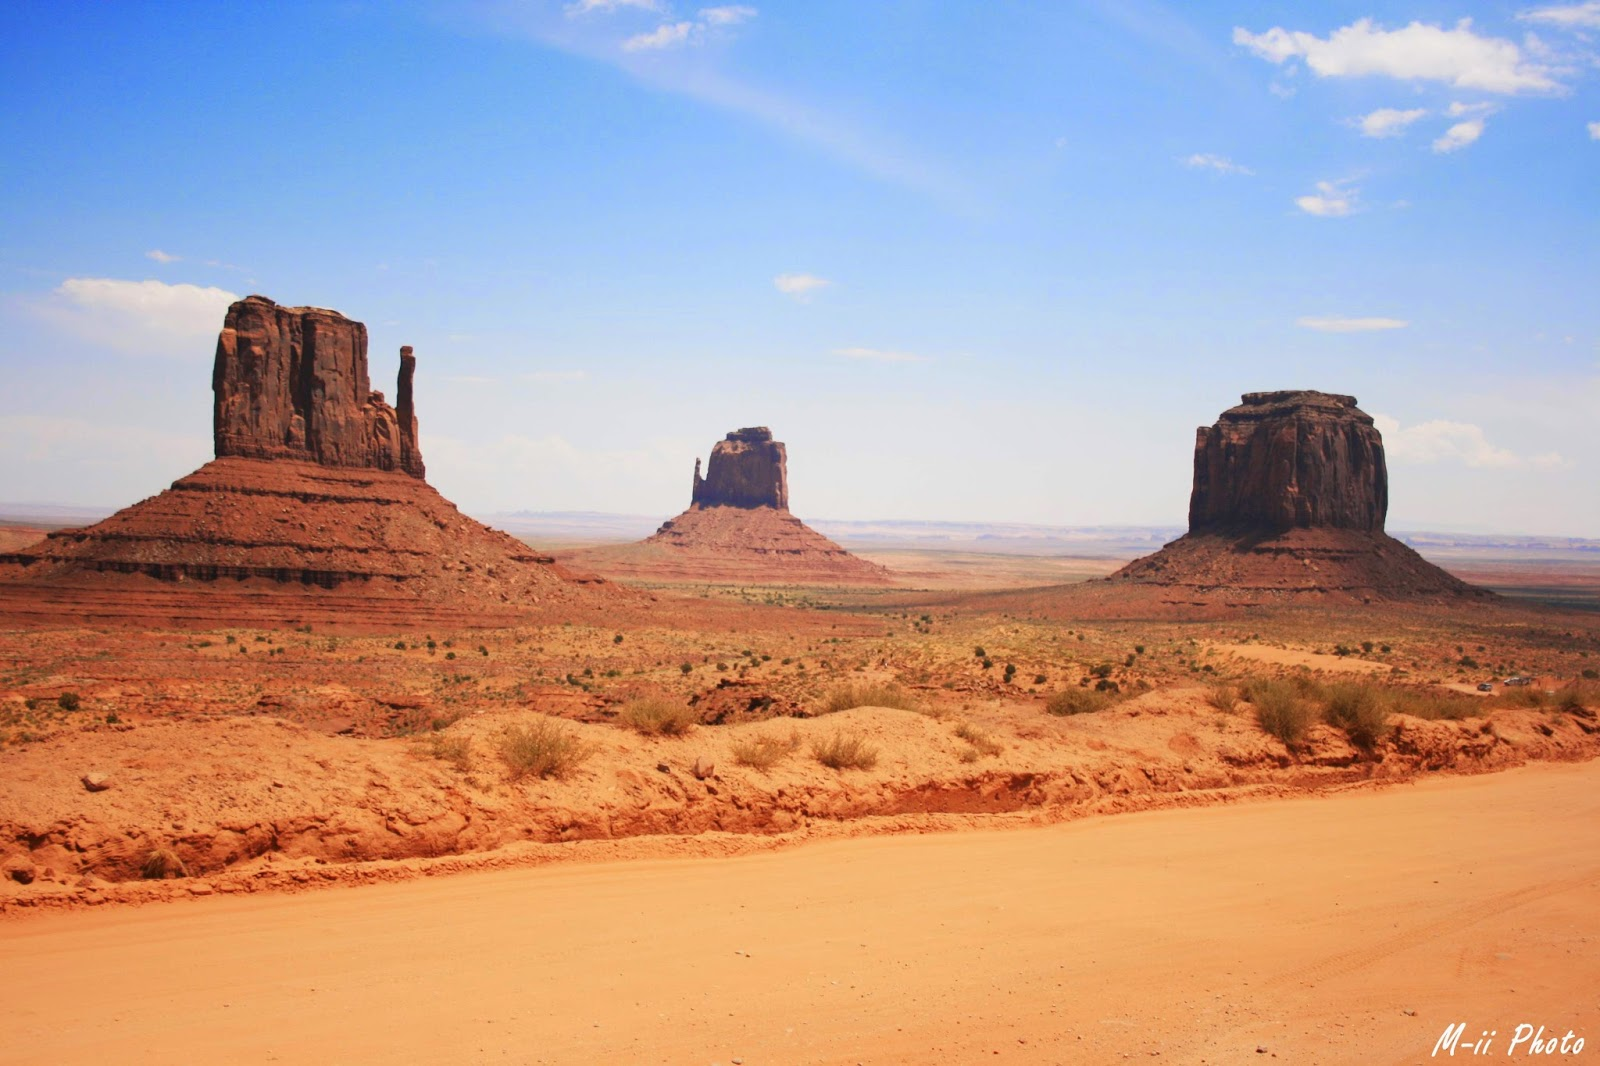 M-ii Photo: Monument Valley